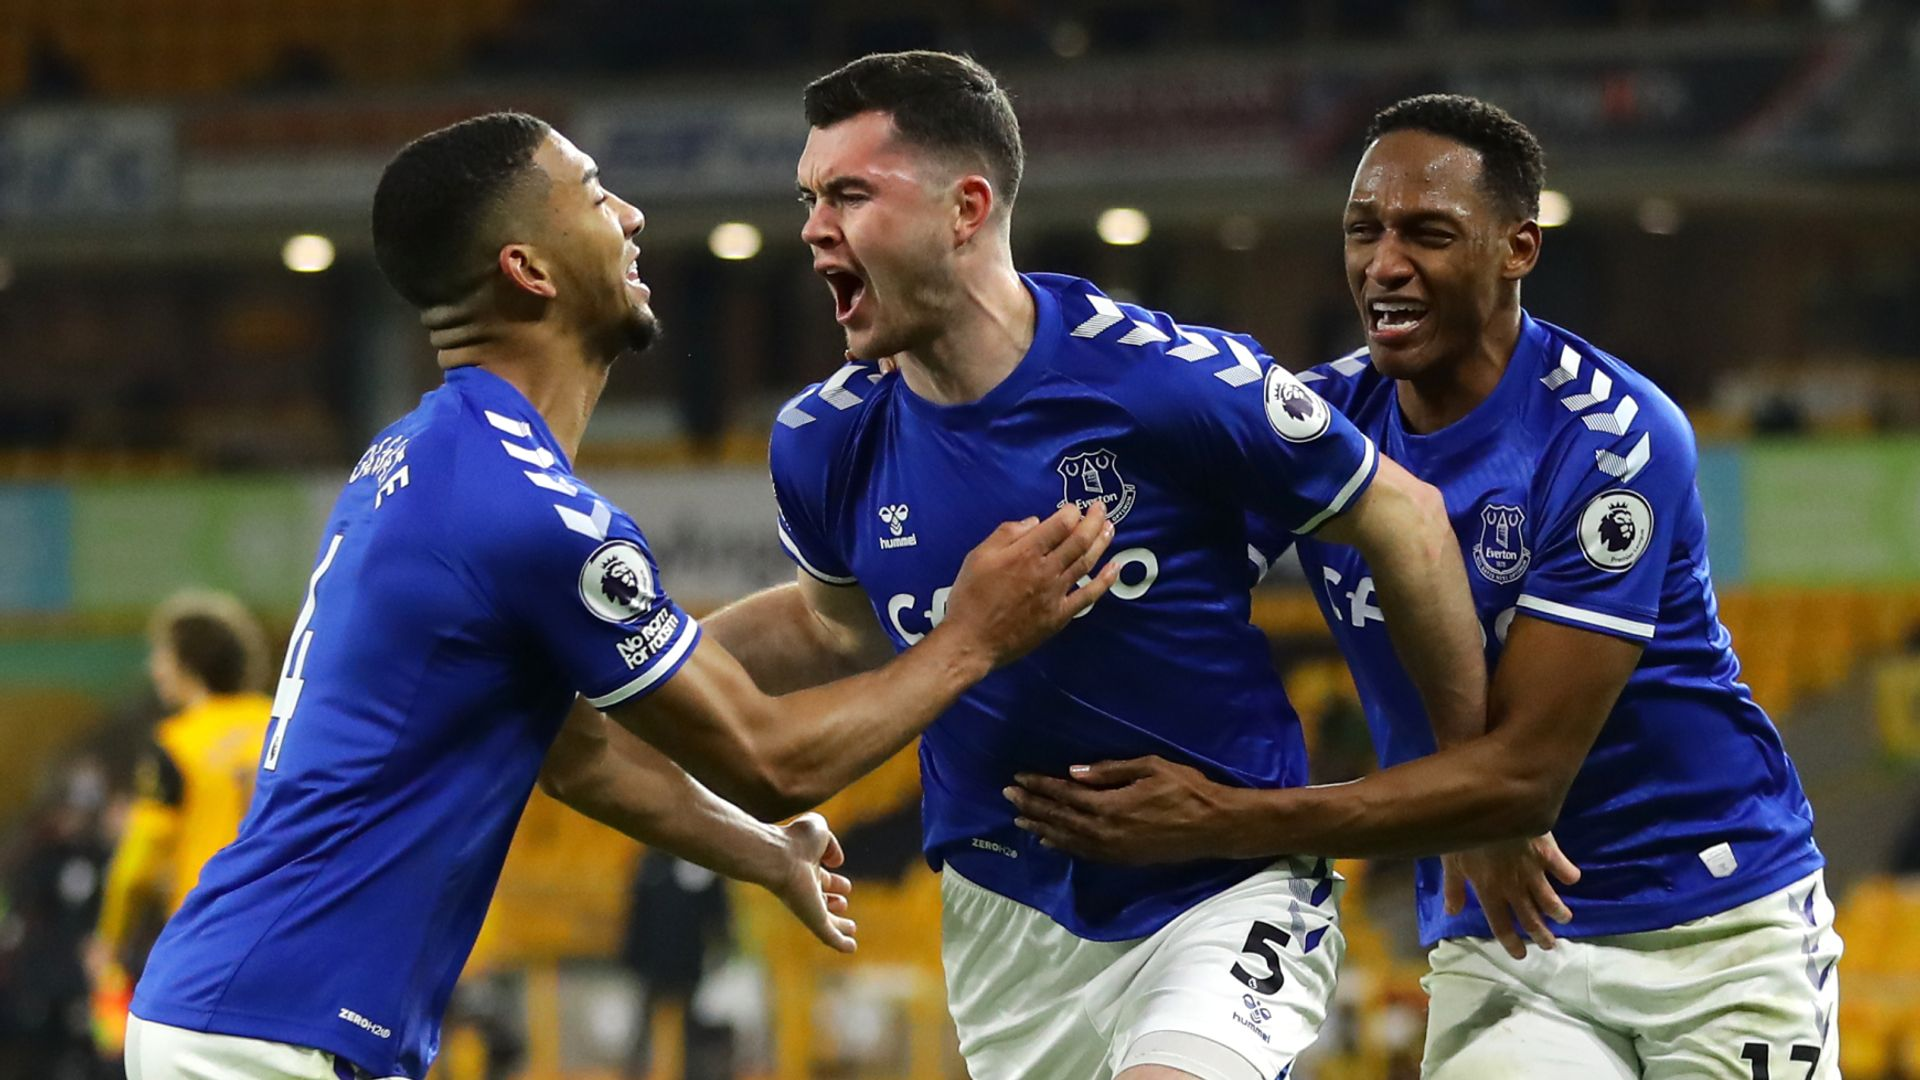 Keane heads Everton into fourth at Wolves